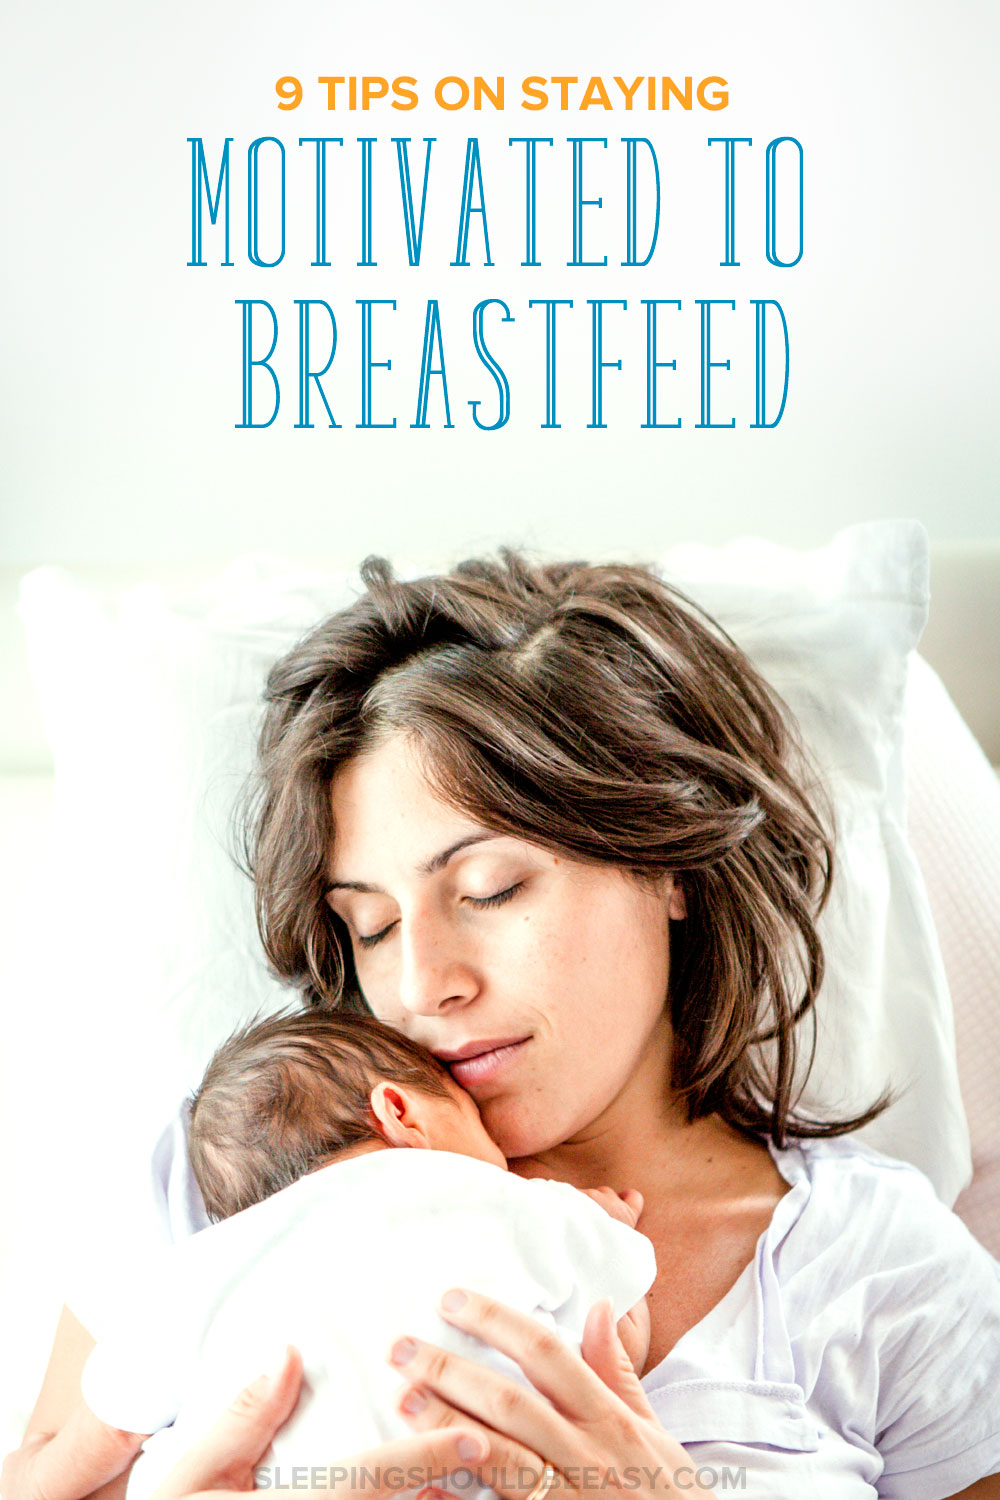 Are you debating whether to continue or quit breastfeeding? Breastfeeding can take you by surprise and even discourage you from continuing. Here are 9 tips on staying motivated to breastfeed.